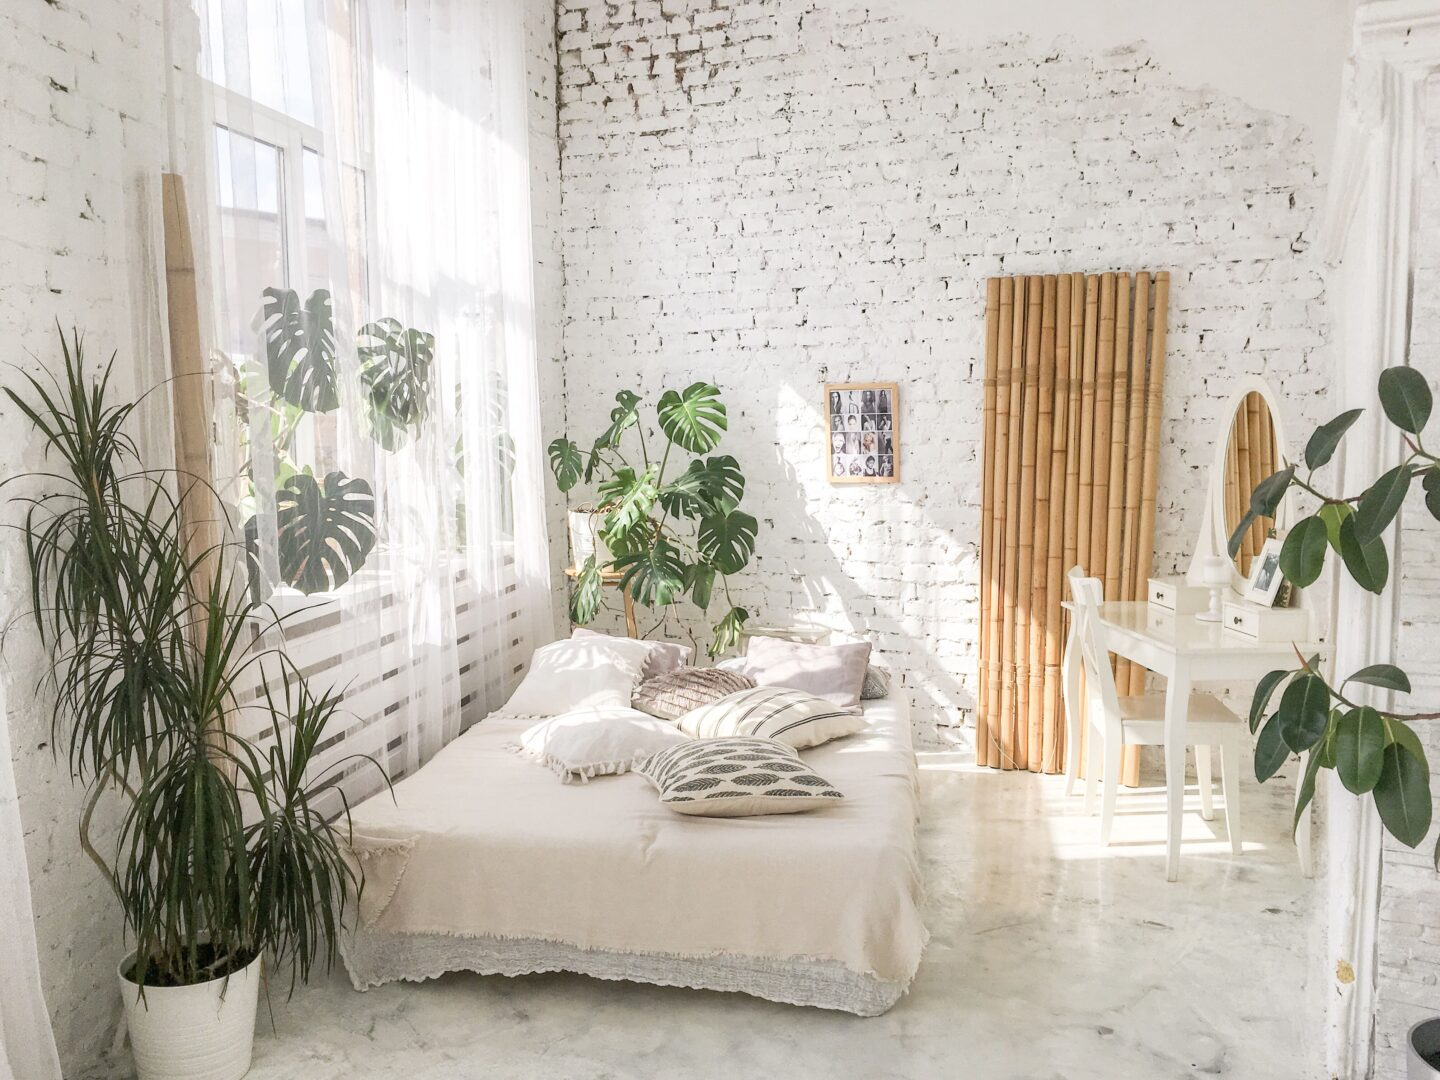 Boho style bedroom with plants for a chill vibe